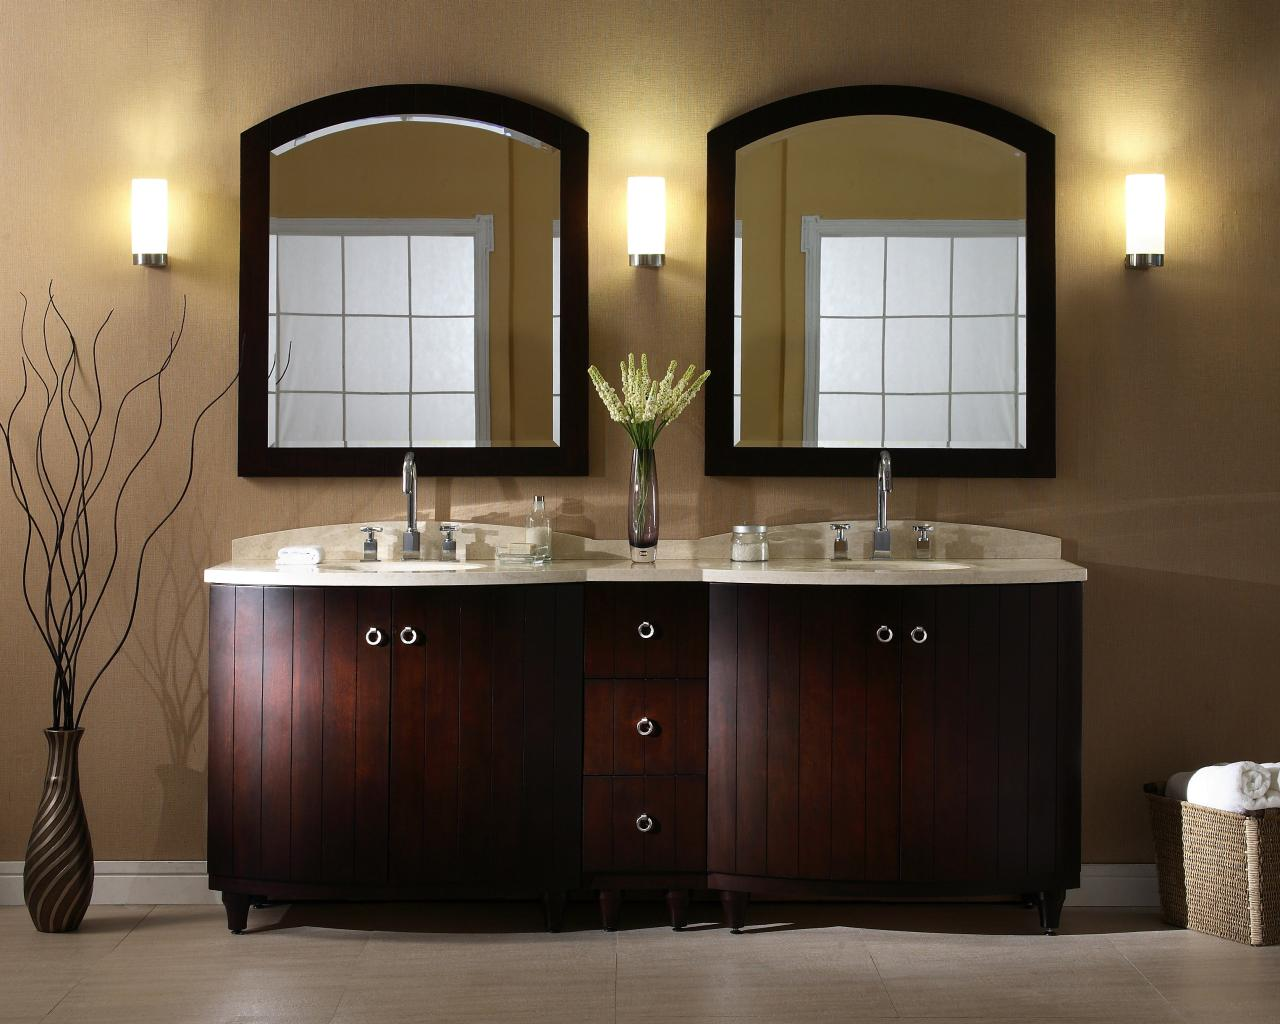 Choosing Bathroom Vanity